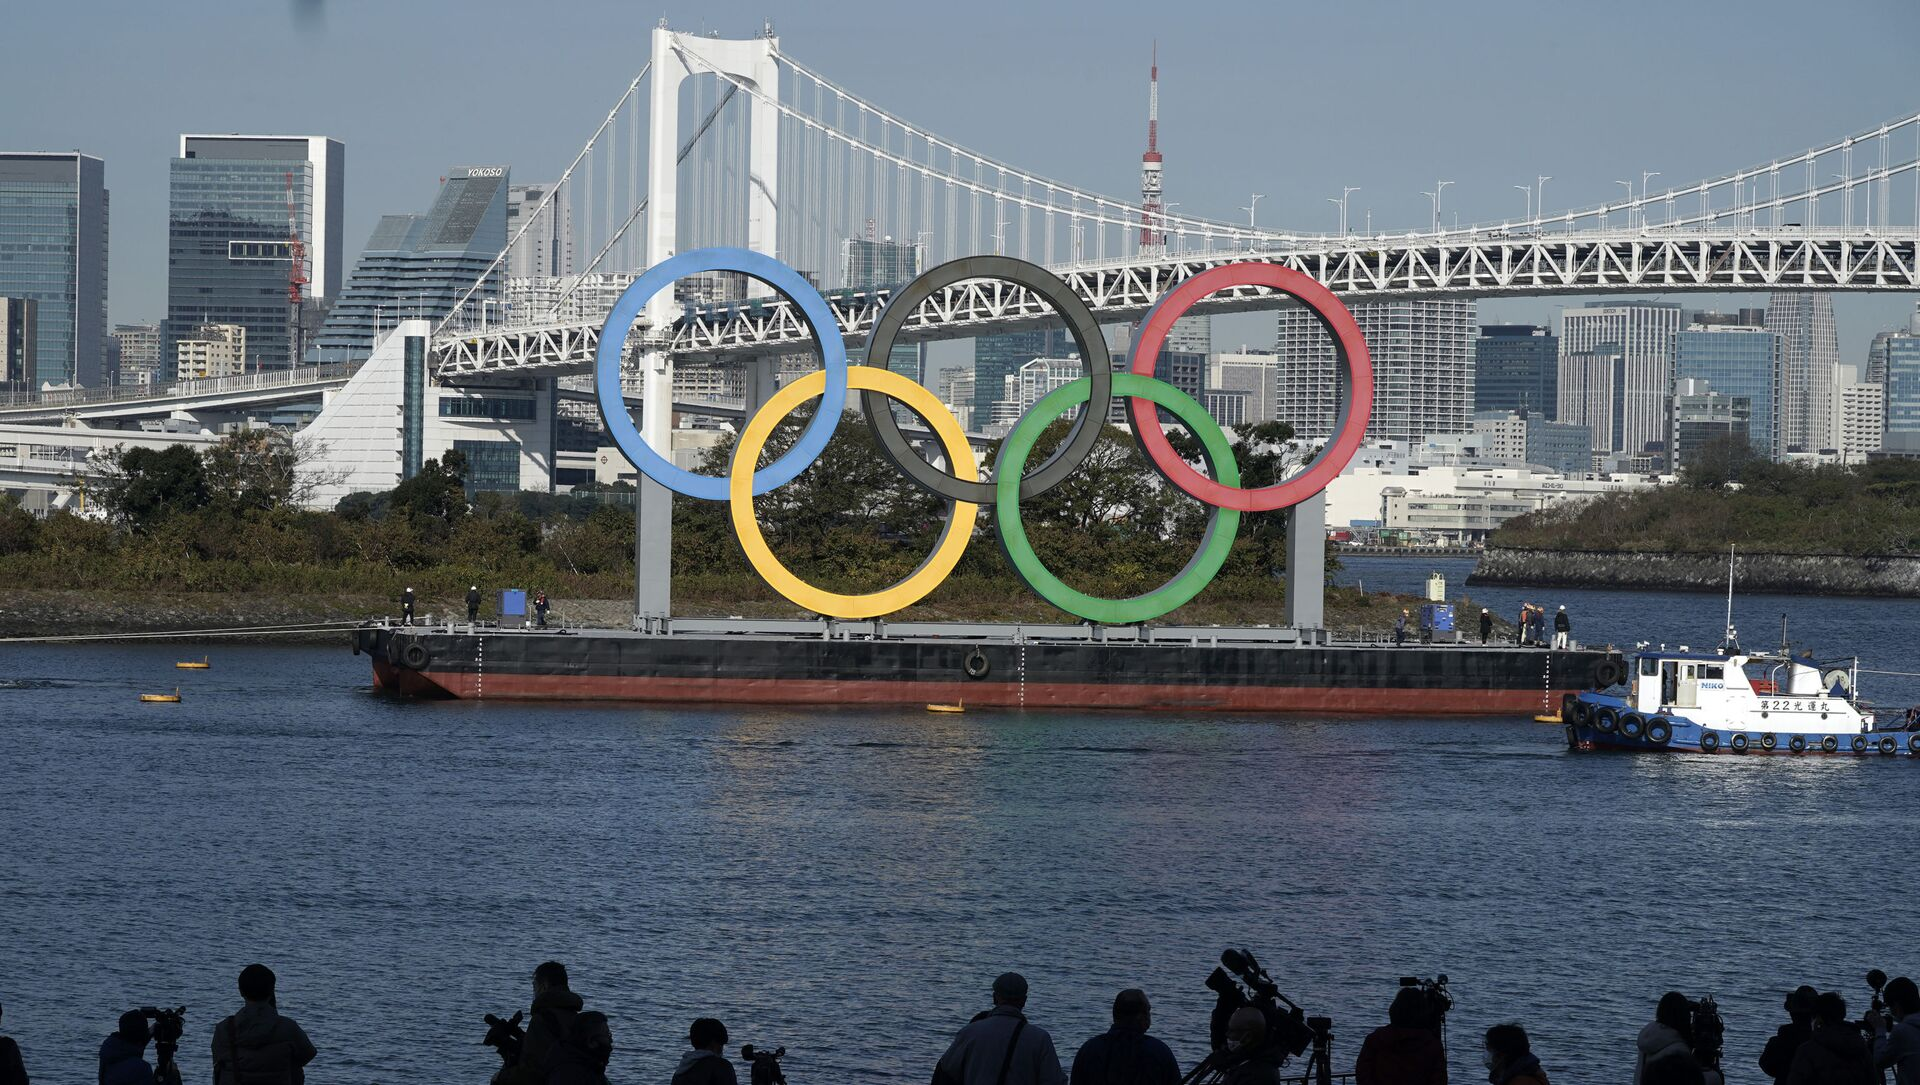 The Olympic Symbol is reinstalled after it was taken down for maintenance ahead of the postponed Tokyo 2020 Olympics in the Odaiba section Tuesday, Dec. 1, 2020, in Tokyo. - Sputnik International, 1920, 30.07.2021